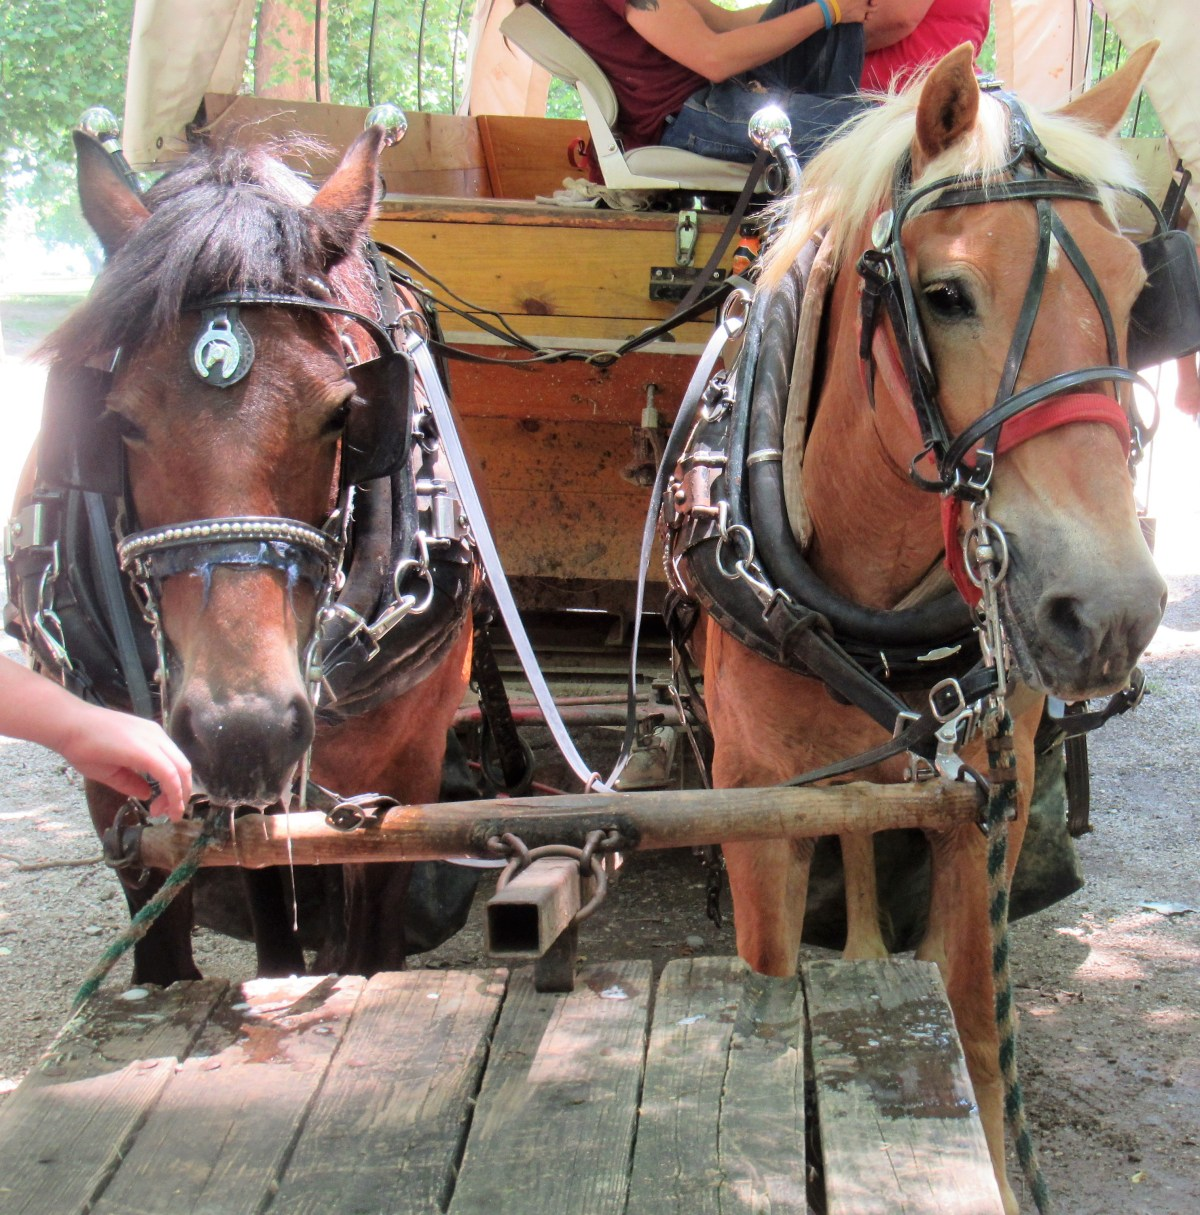 Horse drawn wagon tours are available on the island